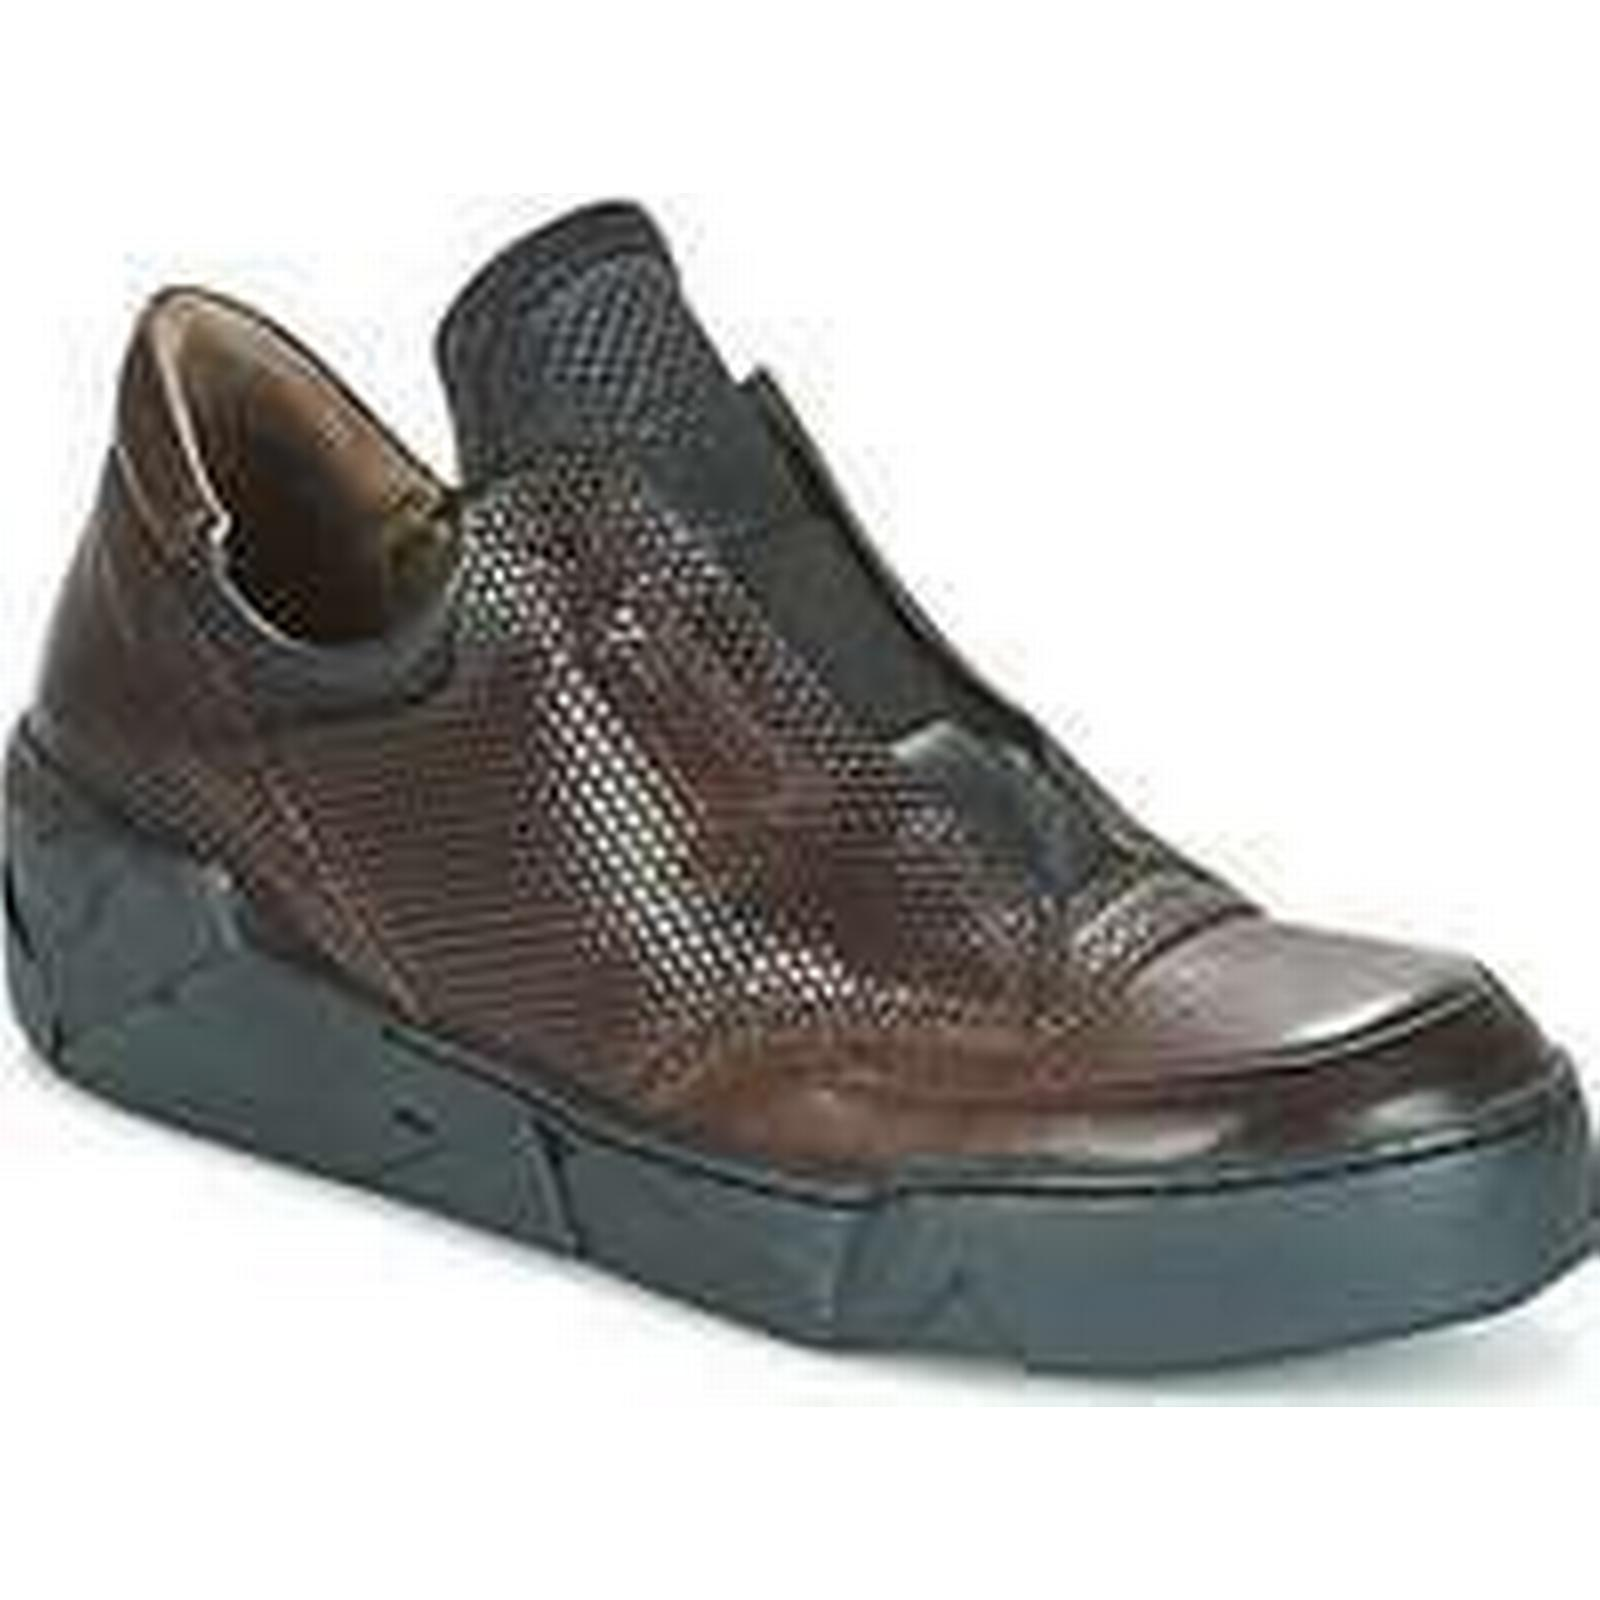 Spartoo.co.uk Airstep / Boots A.S.98 CONCEPT women's Mid Boots / in Brown cac671